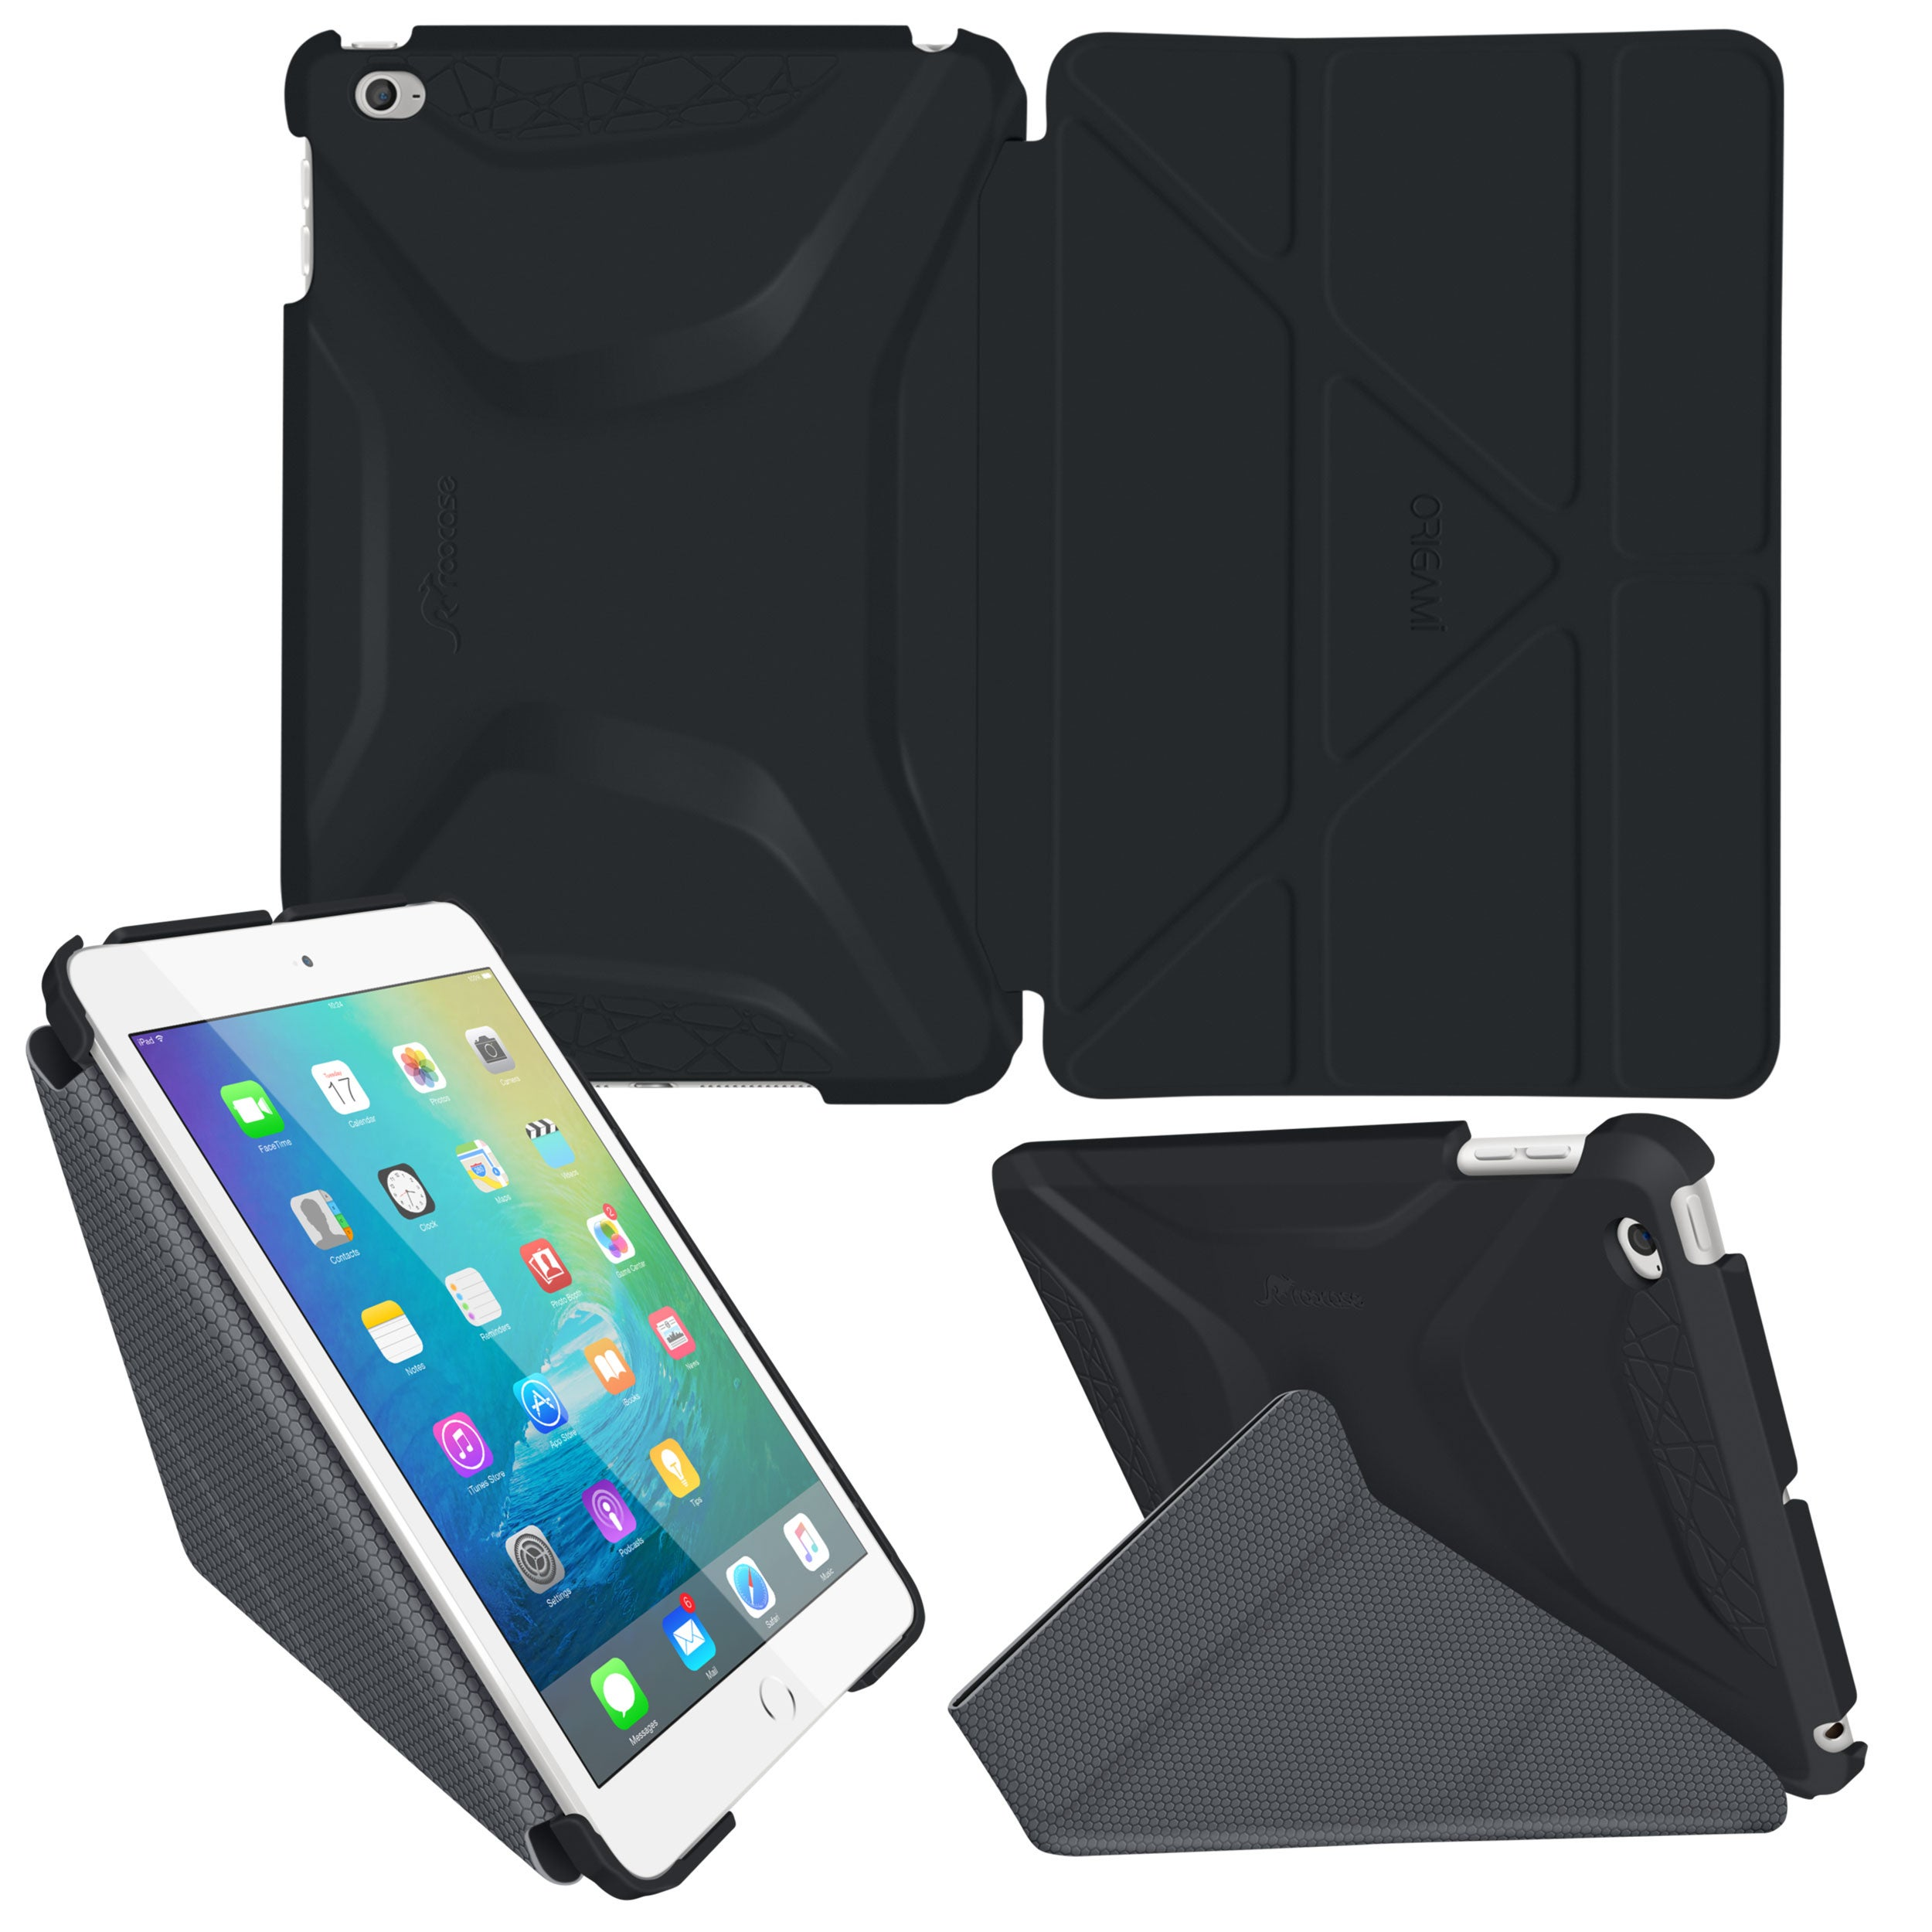 roocase Origami 3D Case for Apple iPad Mini 4